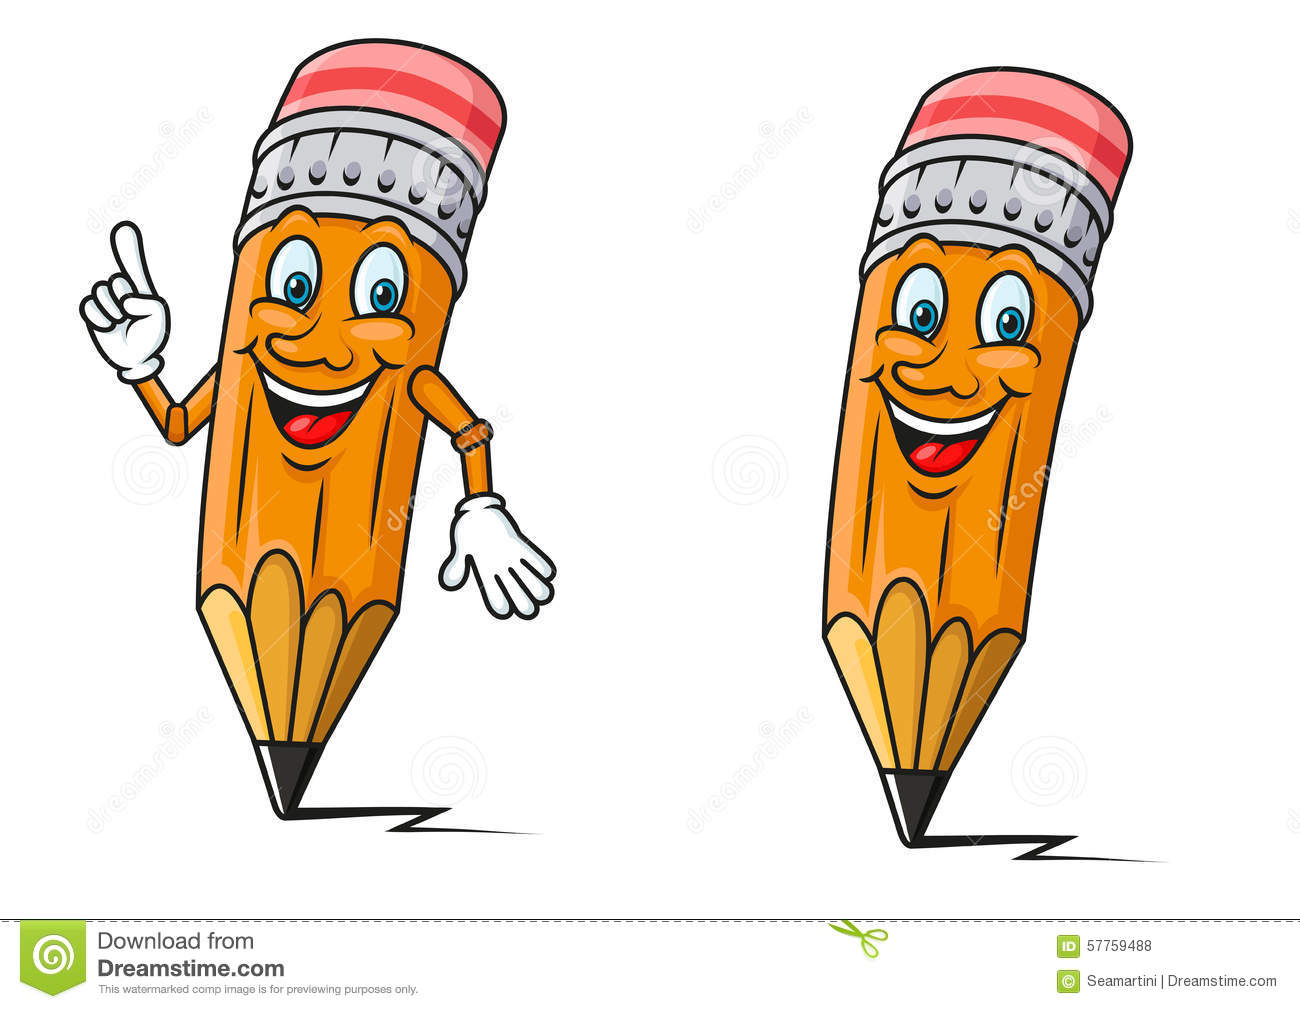 Smiling yellow pencils cartoon characters with red erasers and pointing gesture for education or back to school concept design